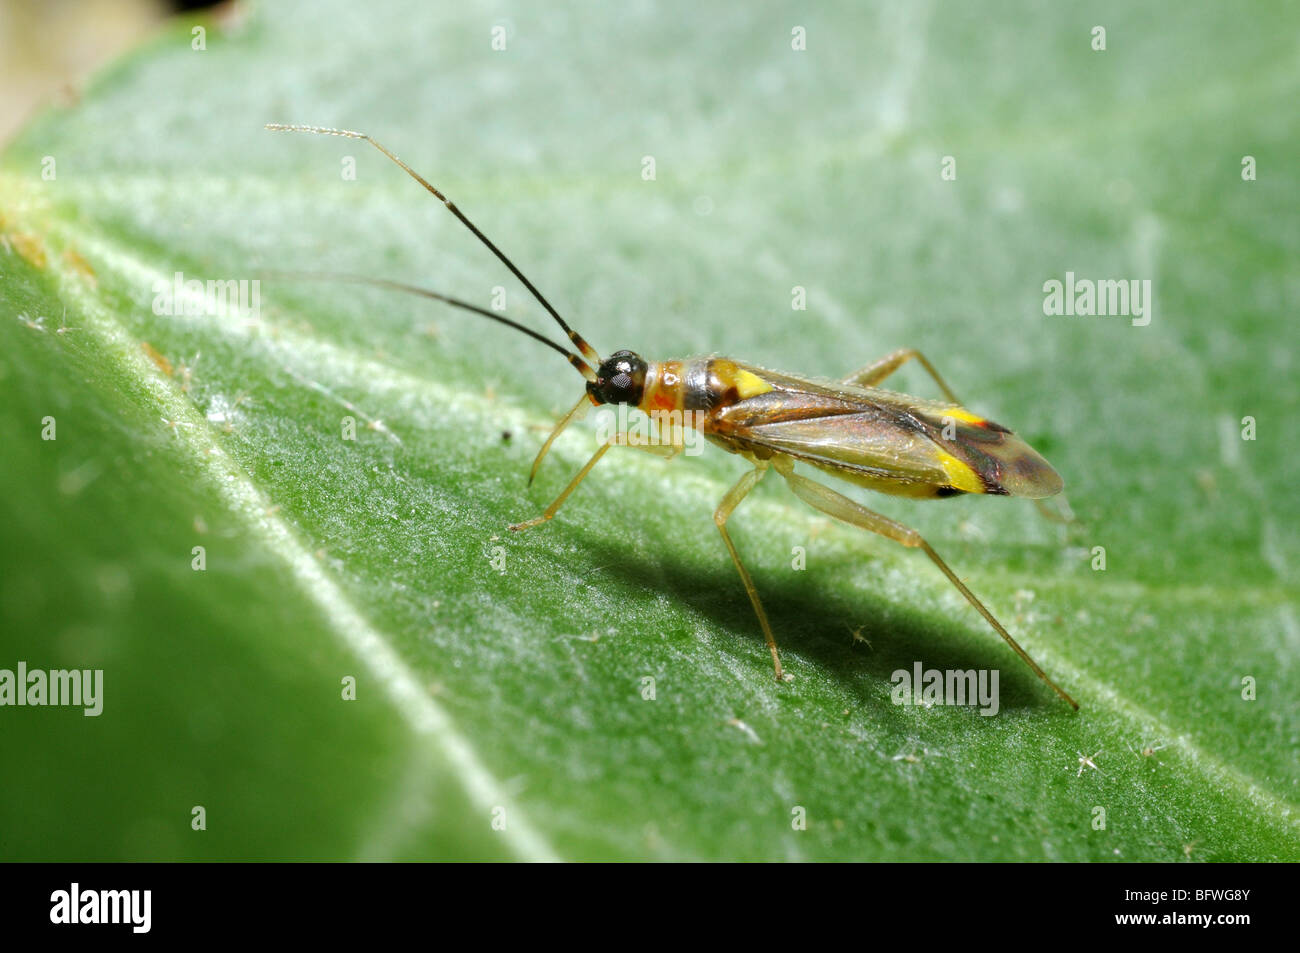 Small Hemipteran on leaf showing the extended mouthparts in close-up Stock Photo